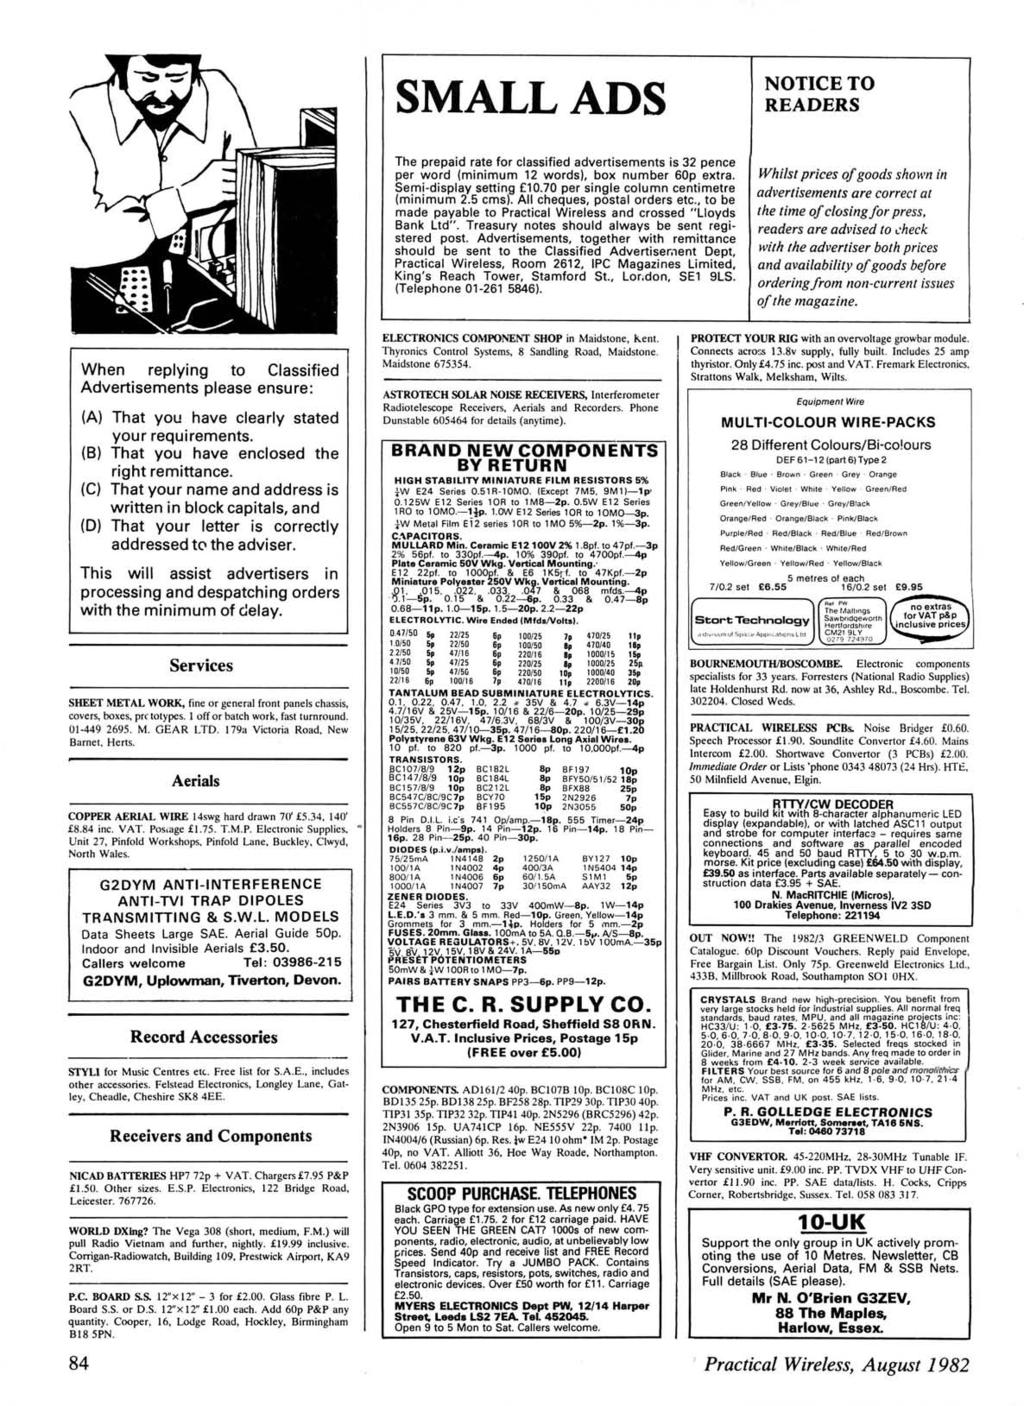 www.americanradiohistory.com SMALL ADS NOTCE TO READERS The prepaid rate for classified advertisements is 32 pence per word (minimum 12 words), box number 60p extra. Semi-display setting 10.